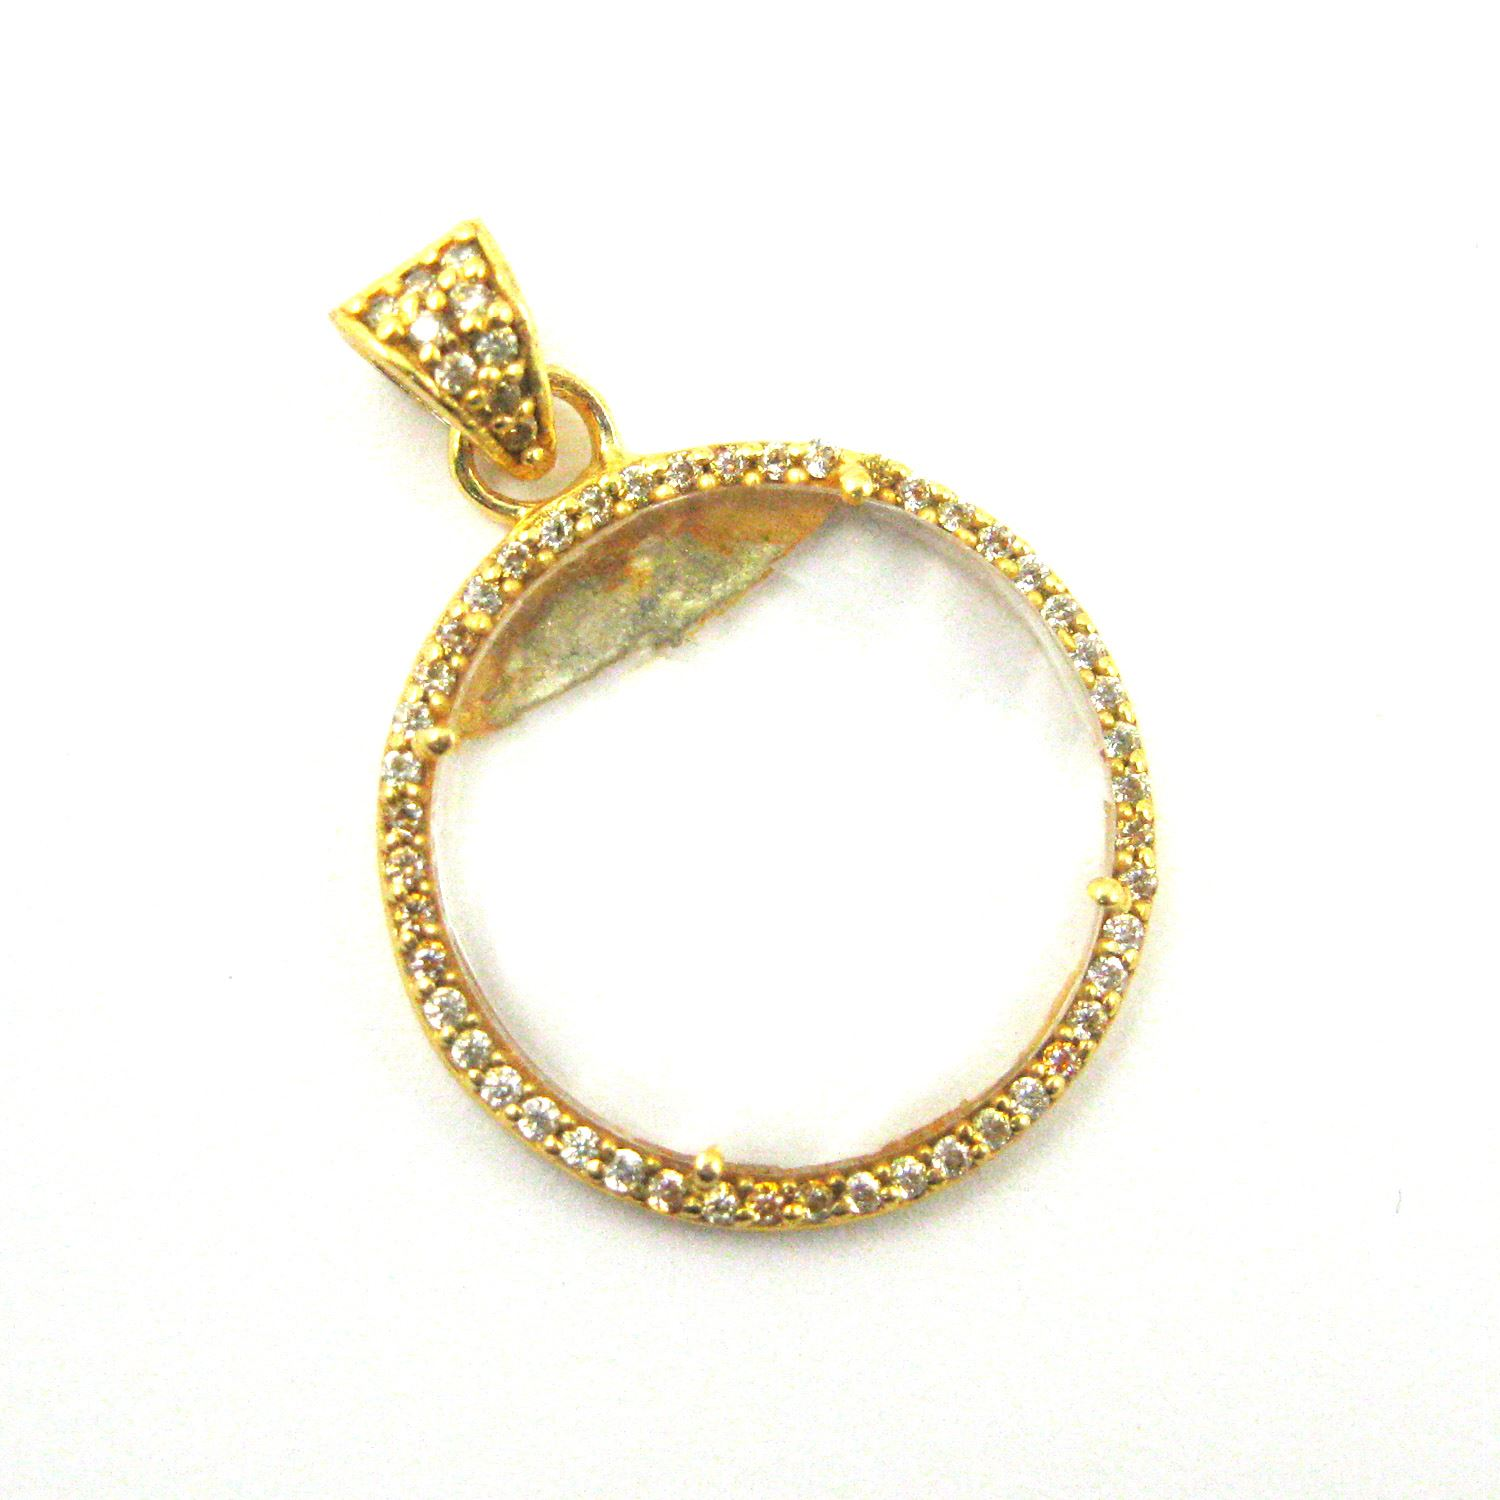 22k Gold plated Sterling Silver Pave Bezel Gemstone Pendant - Cubic Zirconia Pave Setting -  Round Faceted Stone- Crystal Quartz - 21mm